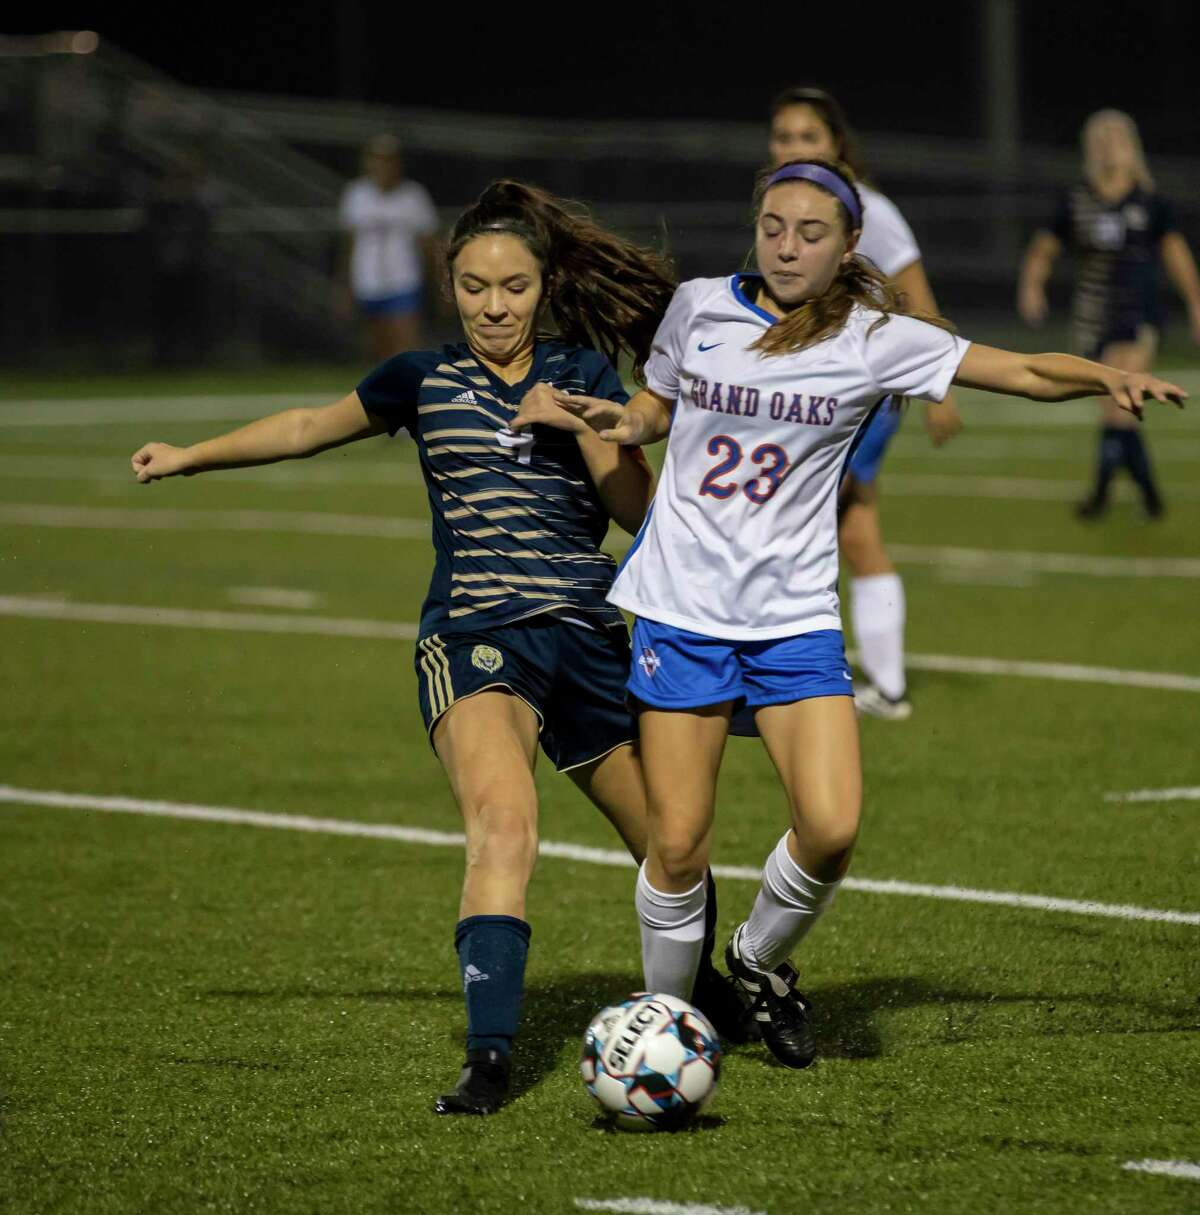 Lake Creek forward Kendal Kurth (4) and Grand Oaks defender Lauren Moylan (23) fight for control of the ball in a District 20-5A girls soccer game in Montgomery on Friday, January 17, 2020.